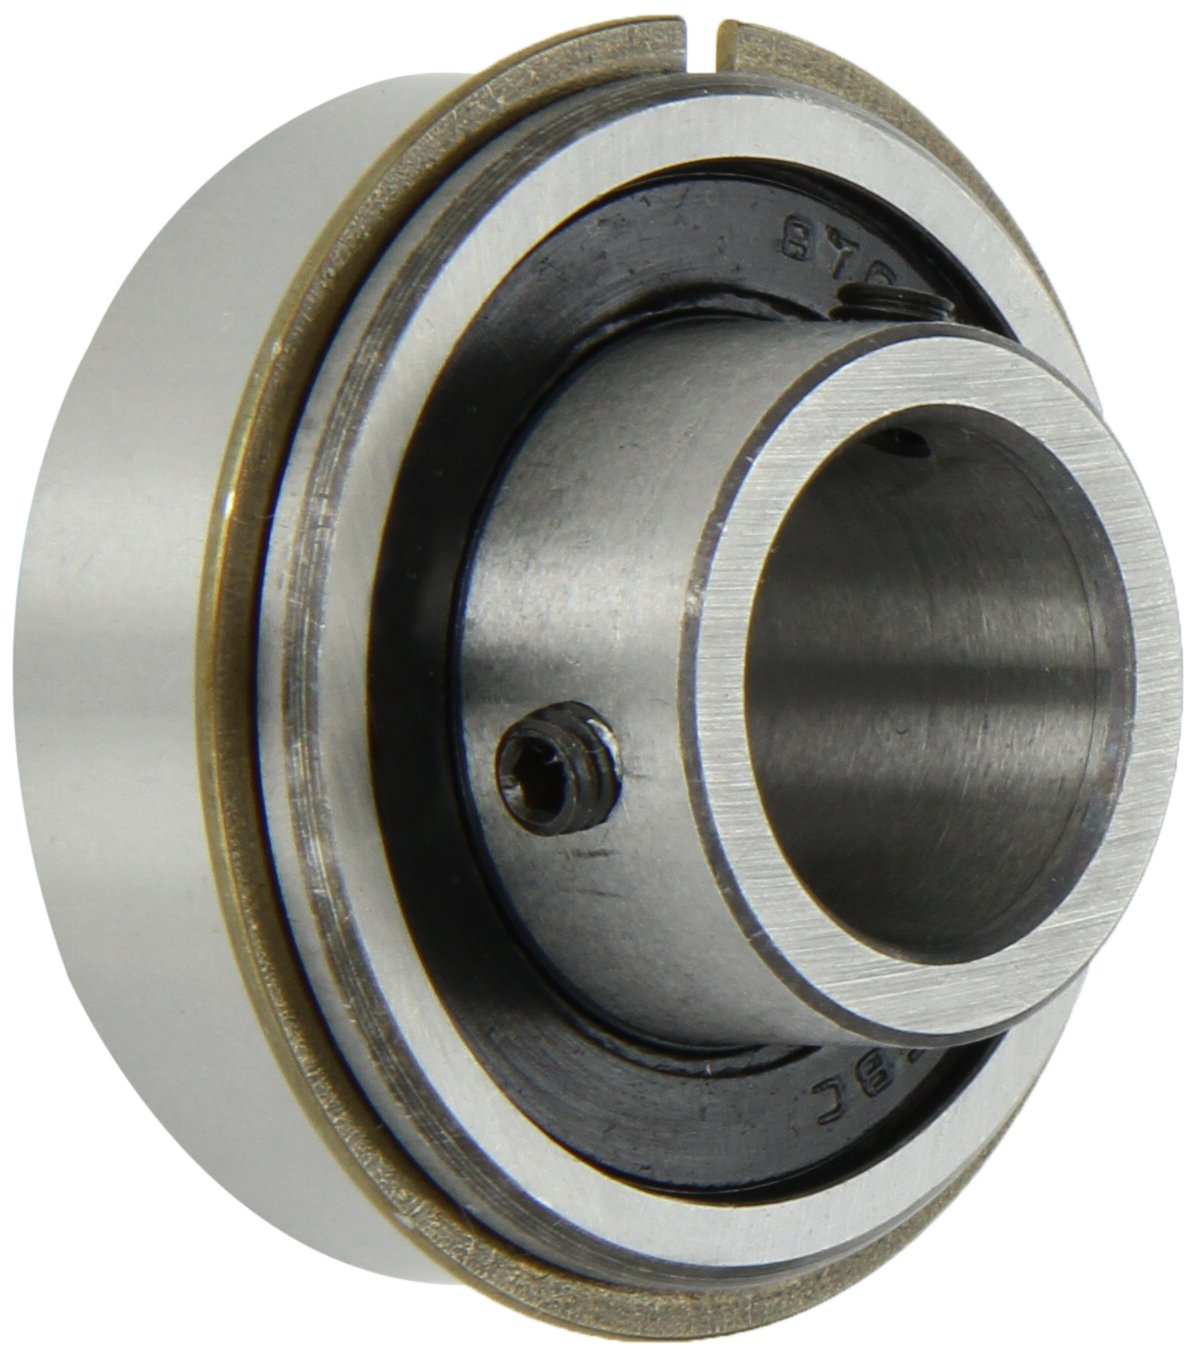 The General 7612 DLG Extra Light Extended Inner Ring Bearing, Double Sealed, With Snap Ring, Inch, 0.75' Bore, 1.75' OD, 1.092' Width, 707 lbs Static Load Capacity, 1366 lbs Dynamic Load Capacity 0.75 Bore 1.75 OD 1.092 Width